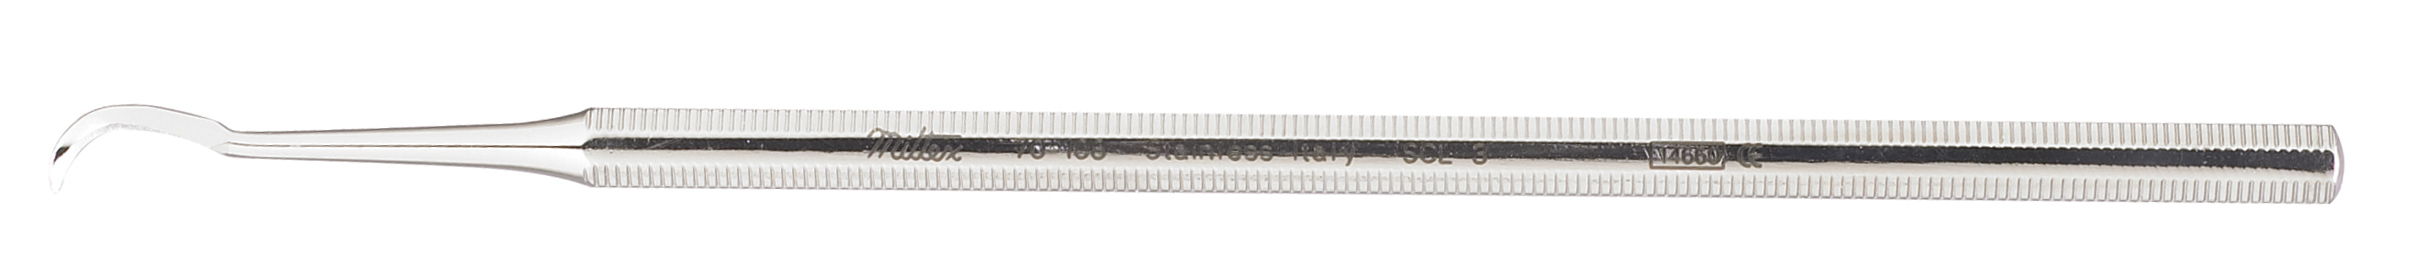 no-3-scaler-octagonal-single-end-70-108-miltex.jpg